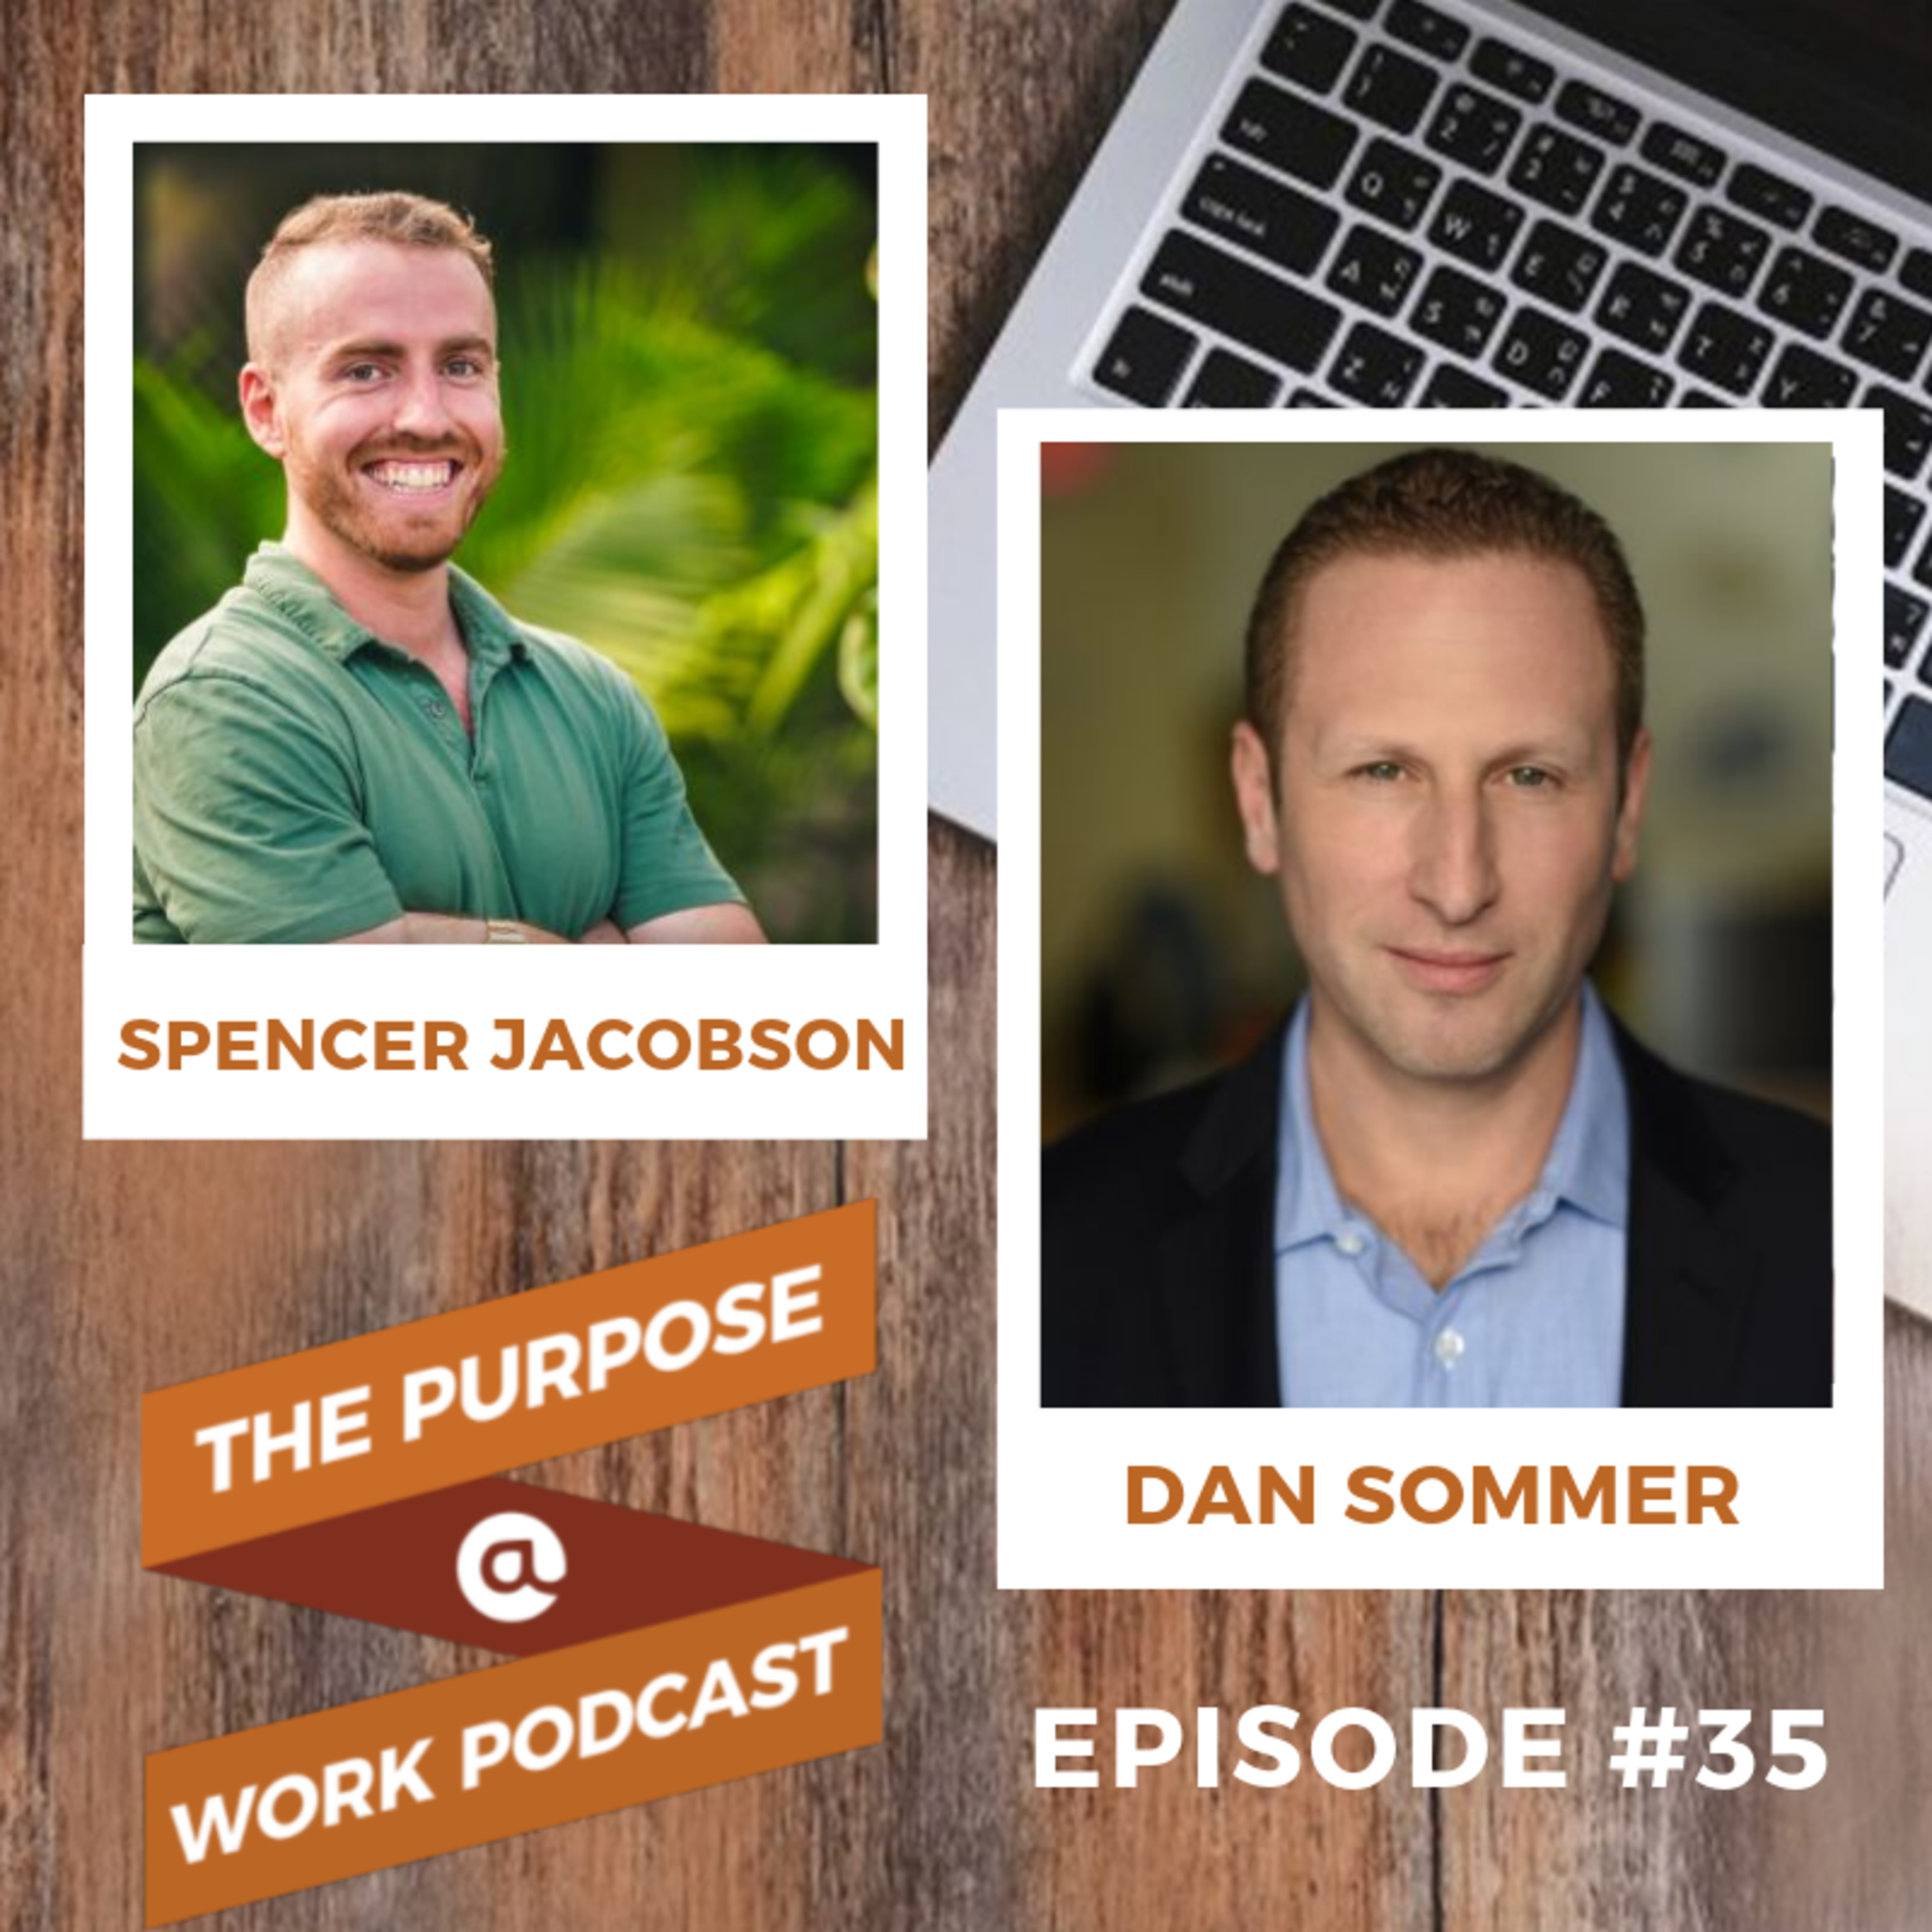 #35 Dan Sommer - CEO and Founder at Trilogy Education: The Masterclass in Leadership that Scales